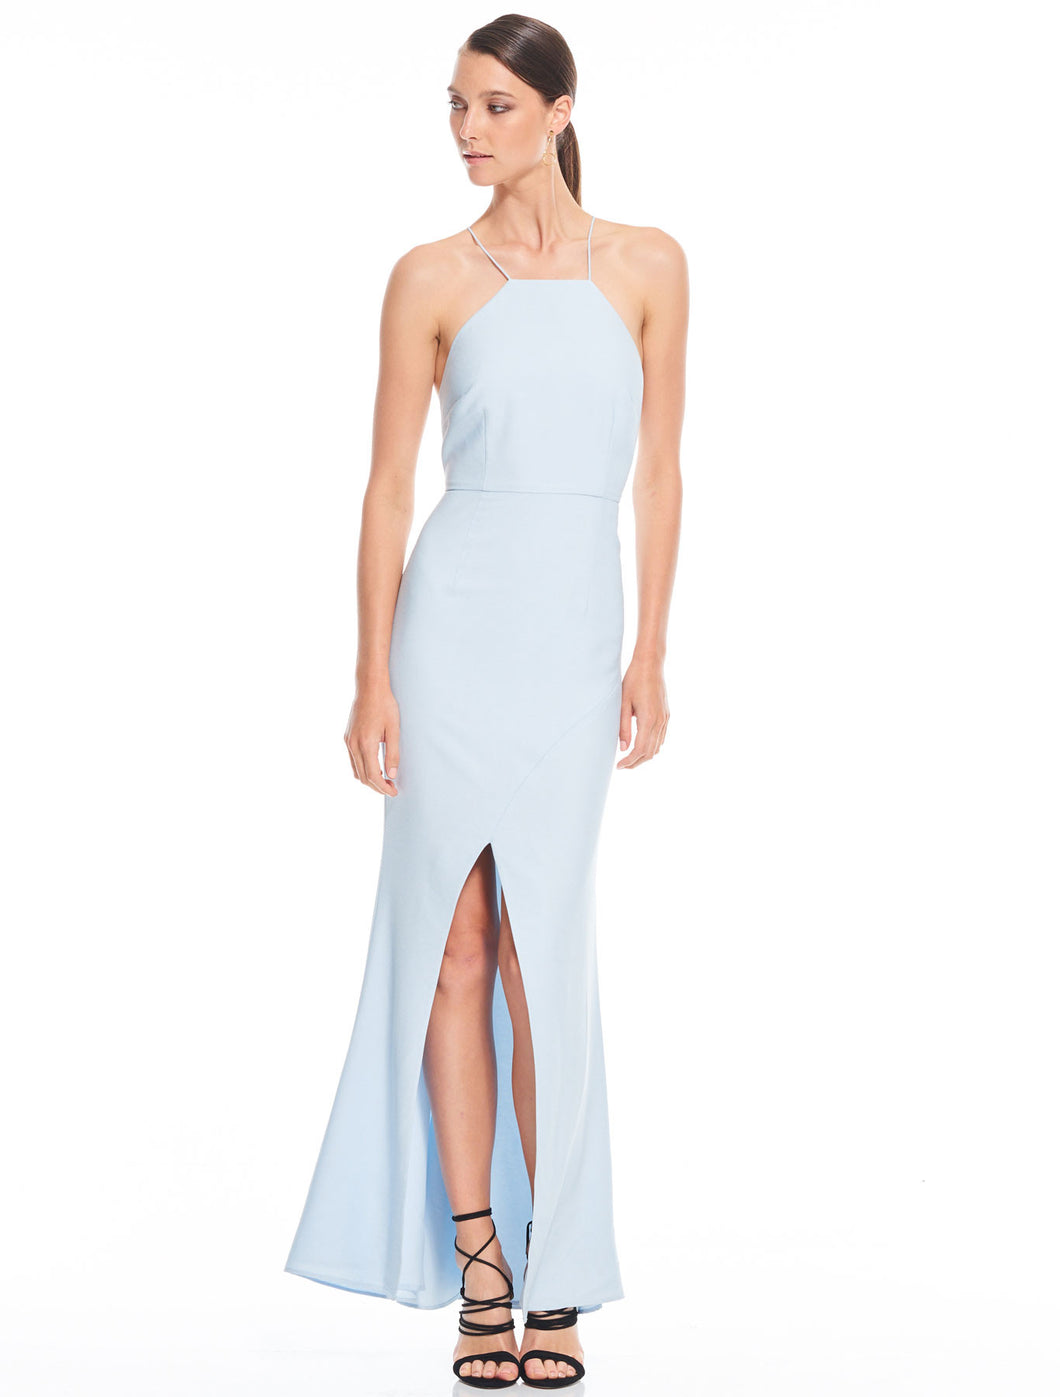 QUIET DISPOSITION GOWN